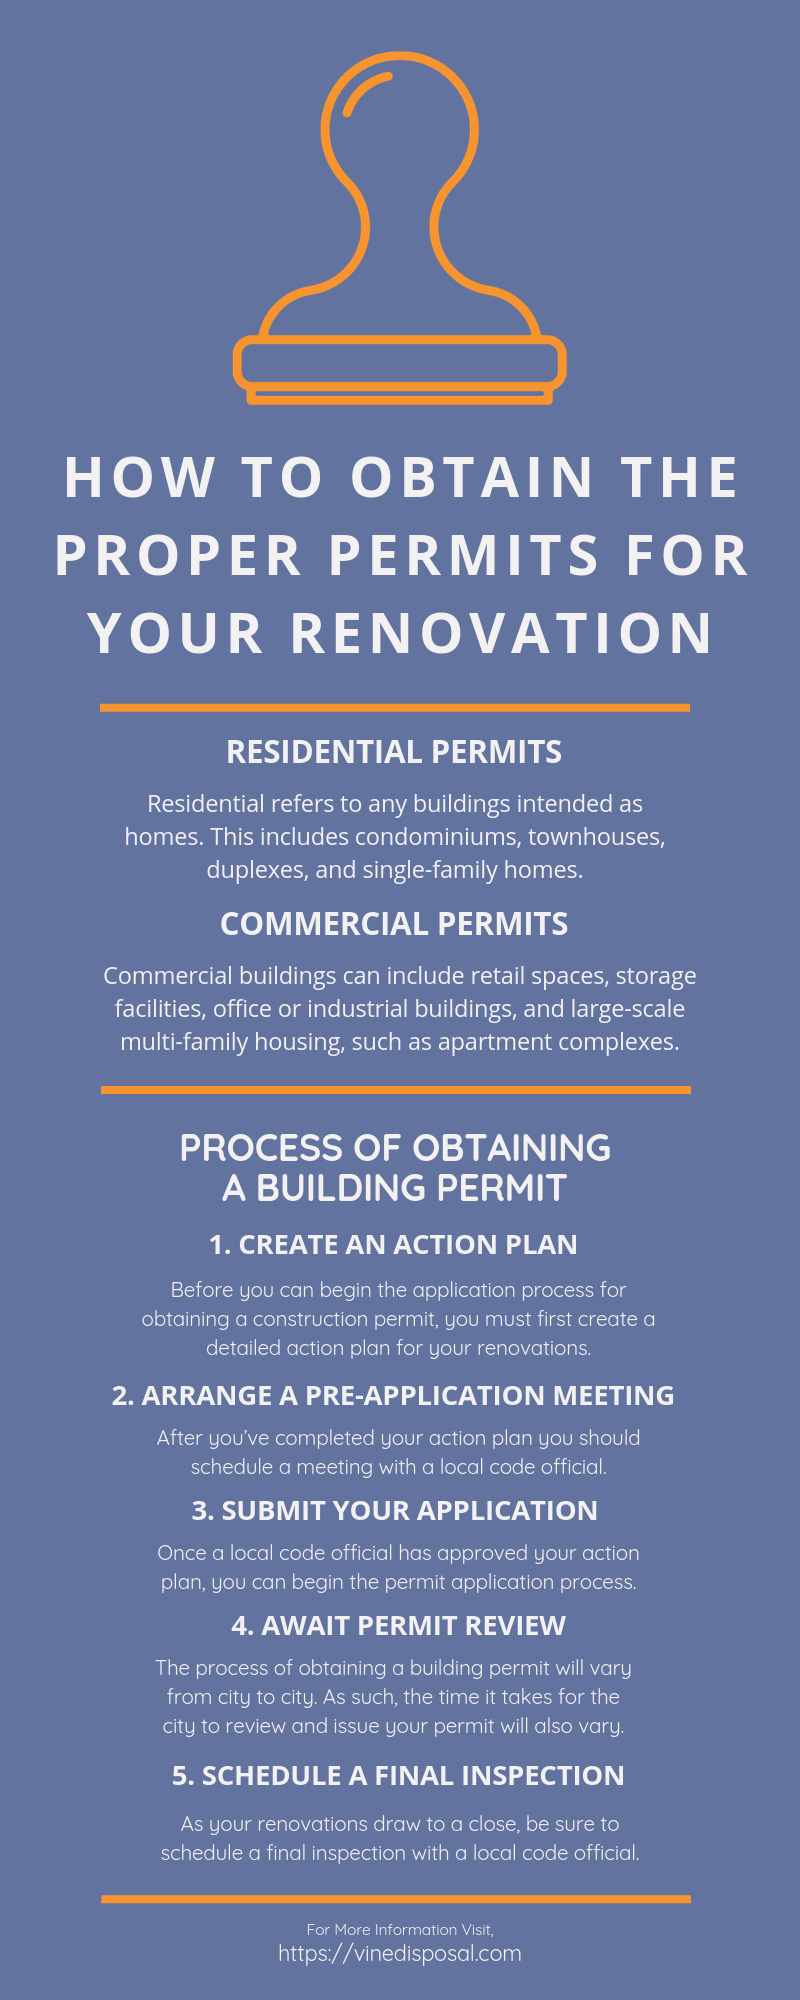 How to Obtain the Proper Permits for Your Renovation infographic